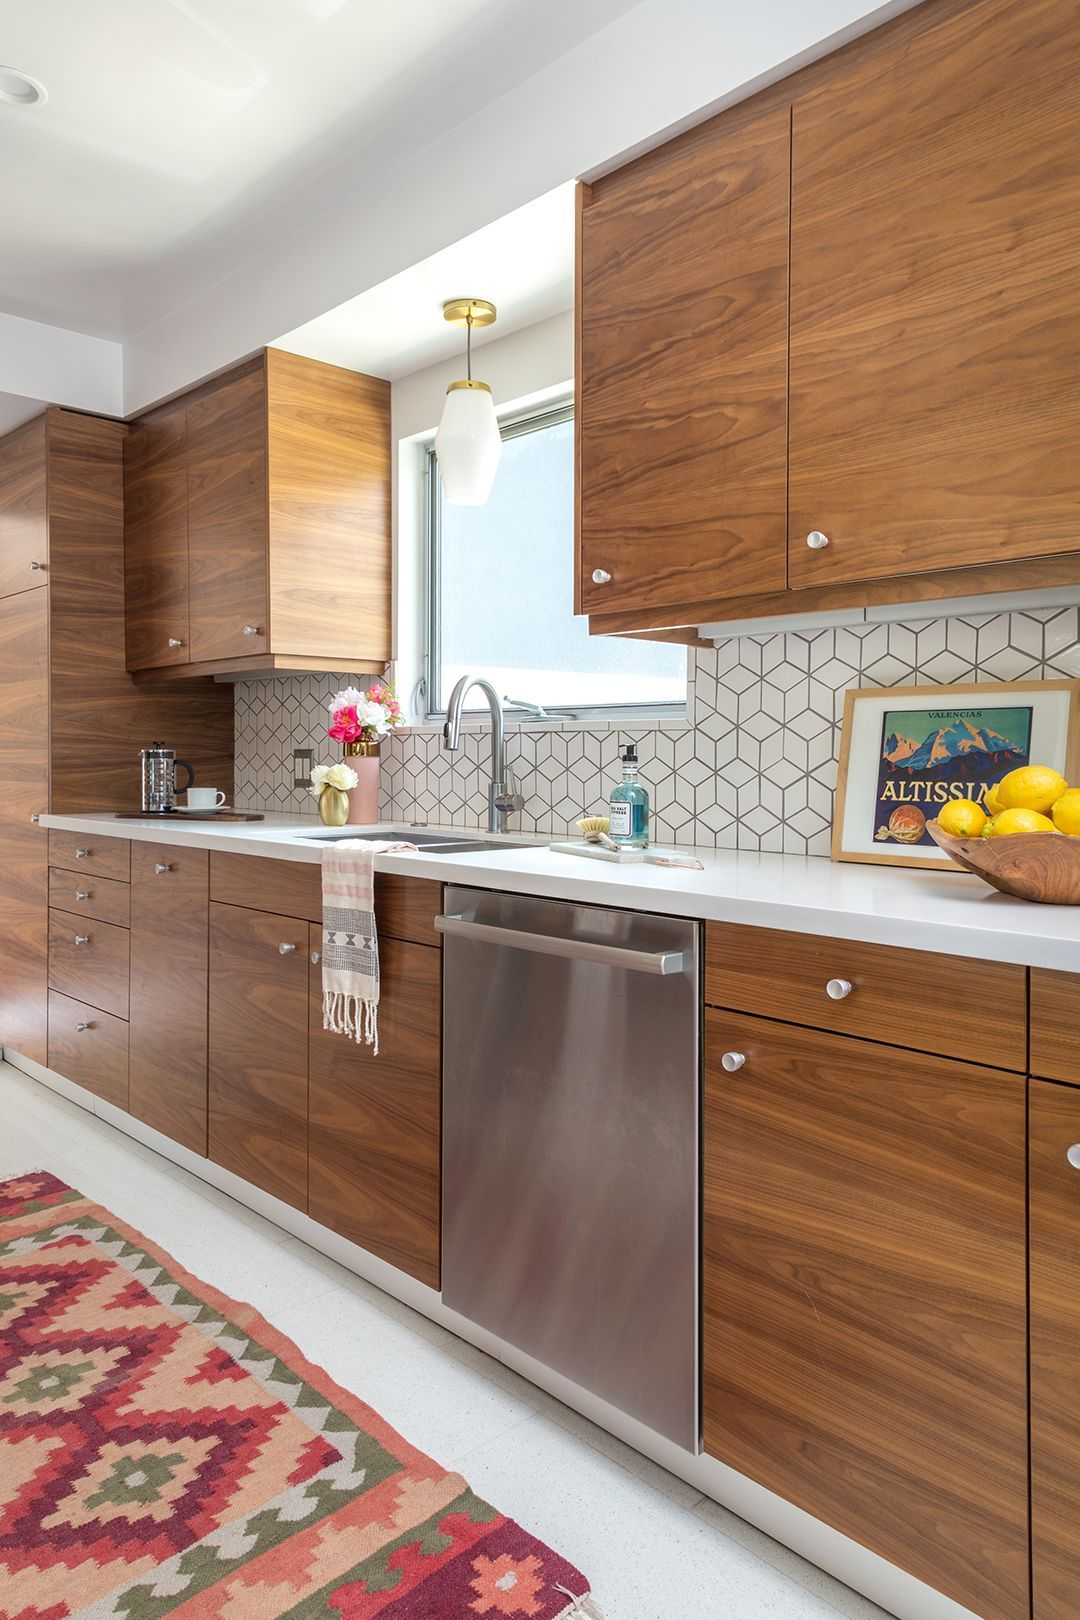 Best Mid Century Modern Kitchen Renovation Avs Home Kitchen 640 x 480